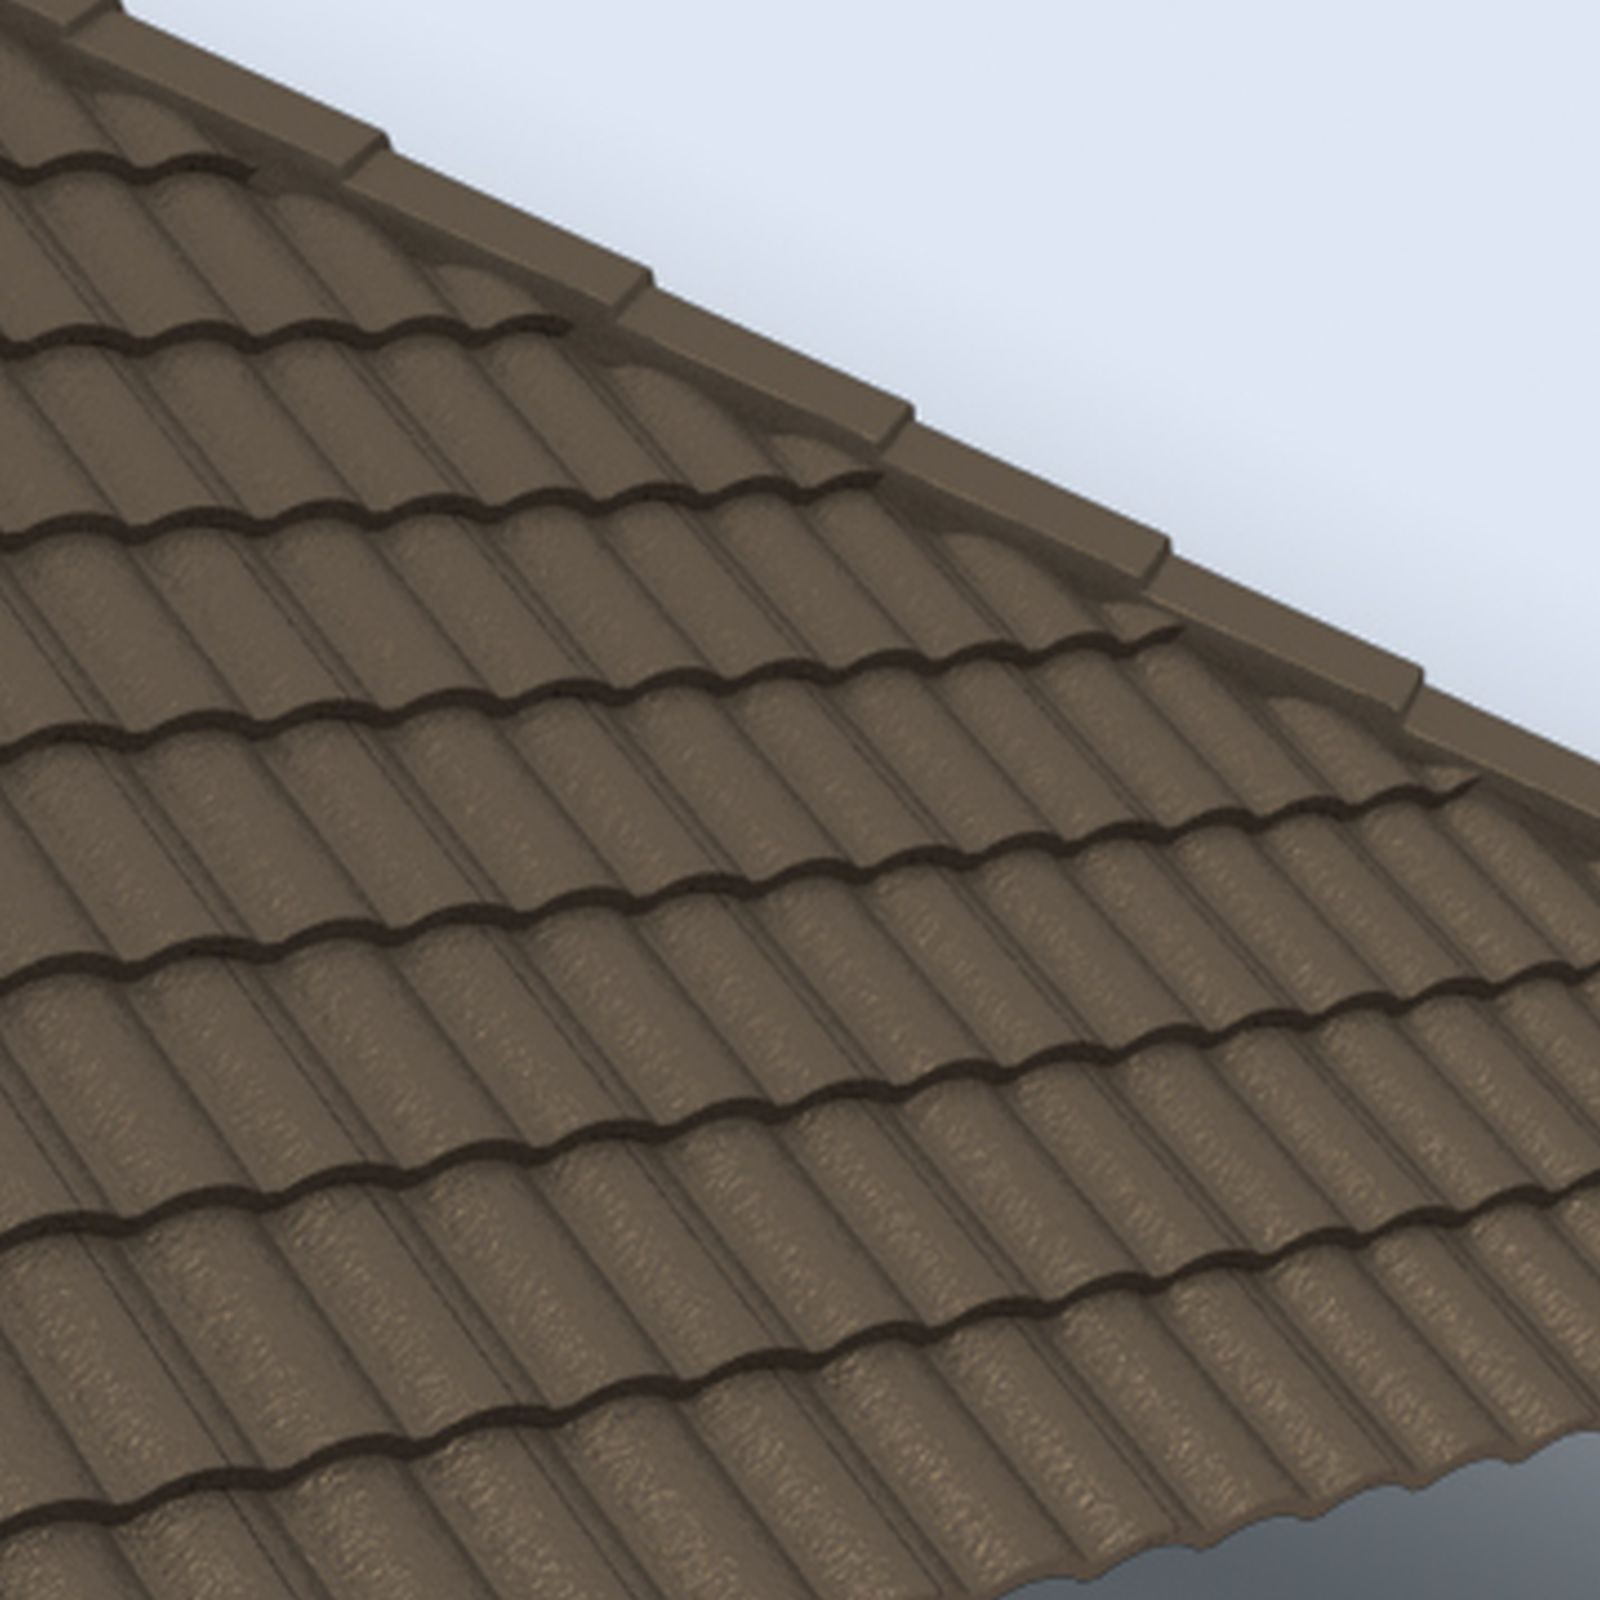 Macquarie Concrete Roof Tiles Vic Design Content